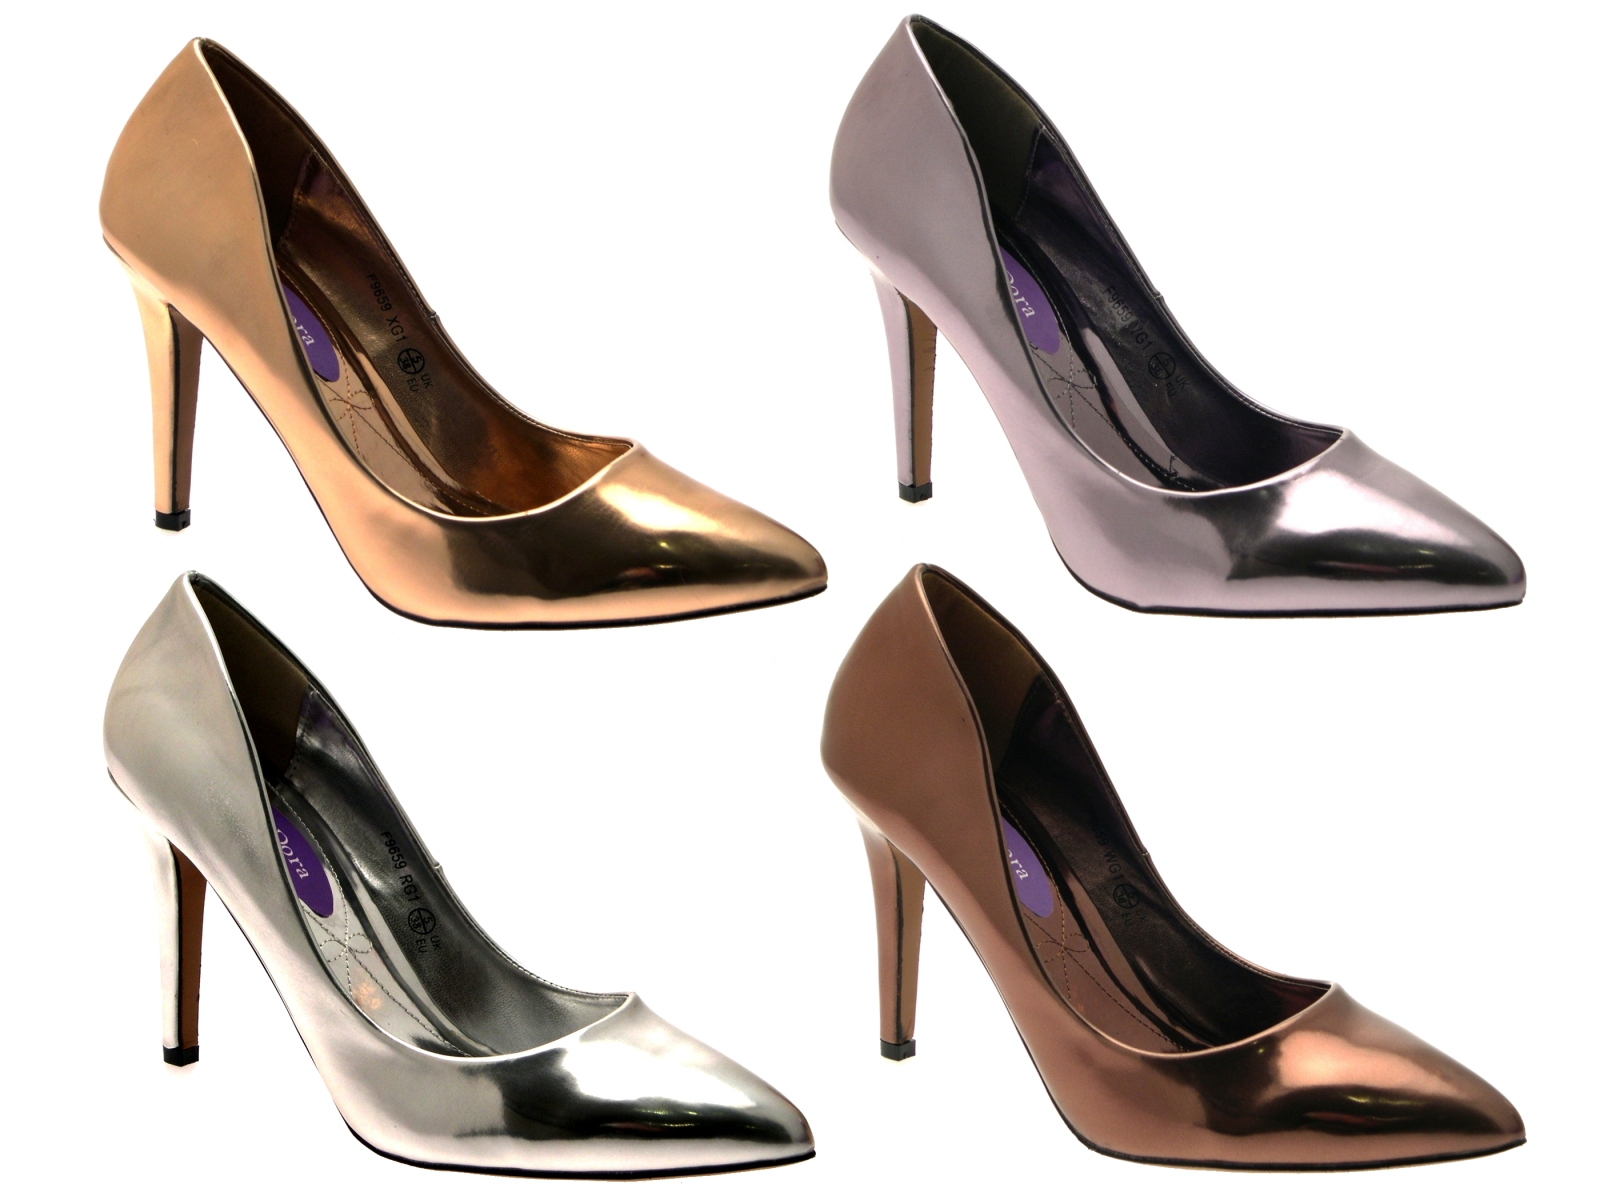 Womens-Metallic-Pointed-Toe-Court-Stiletto-High-Heels-Ladies-Work-Office-Shoes thumbnail 27